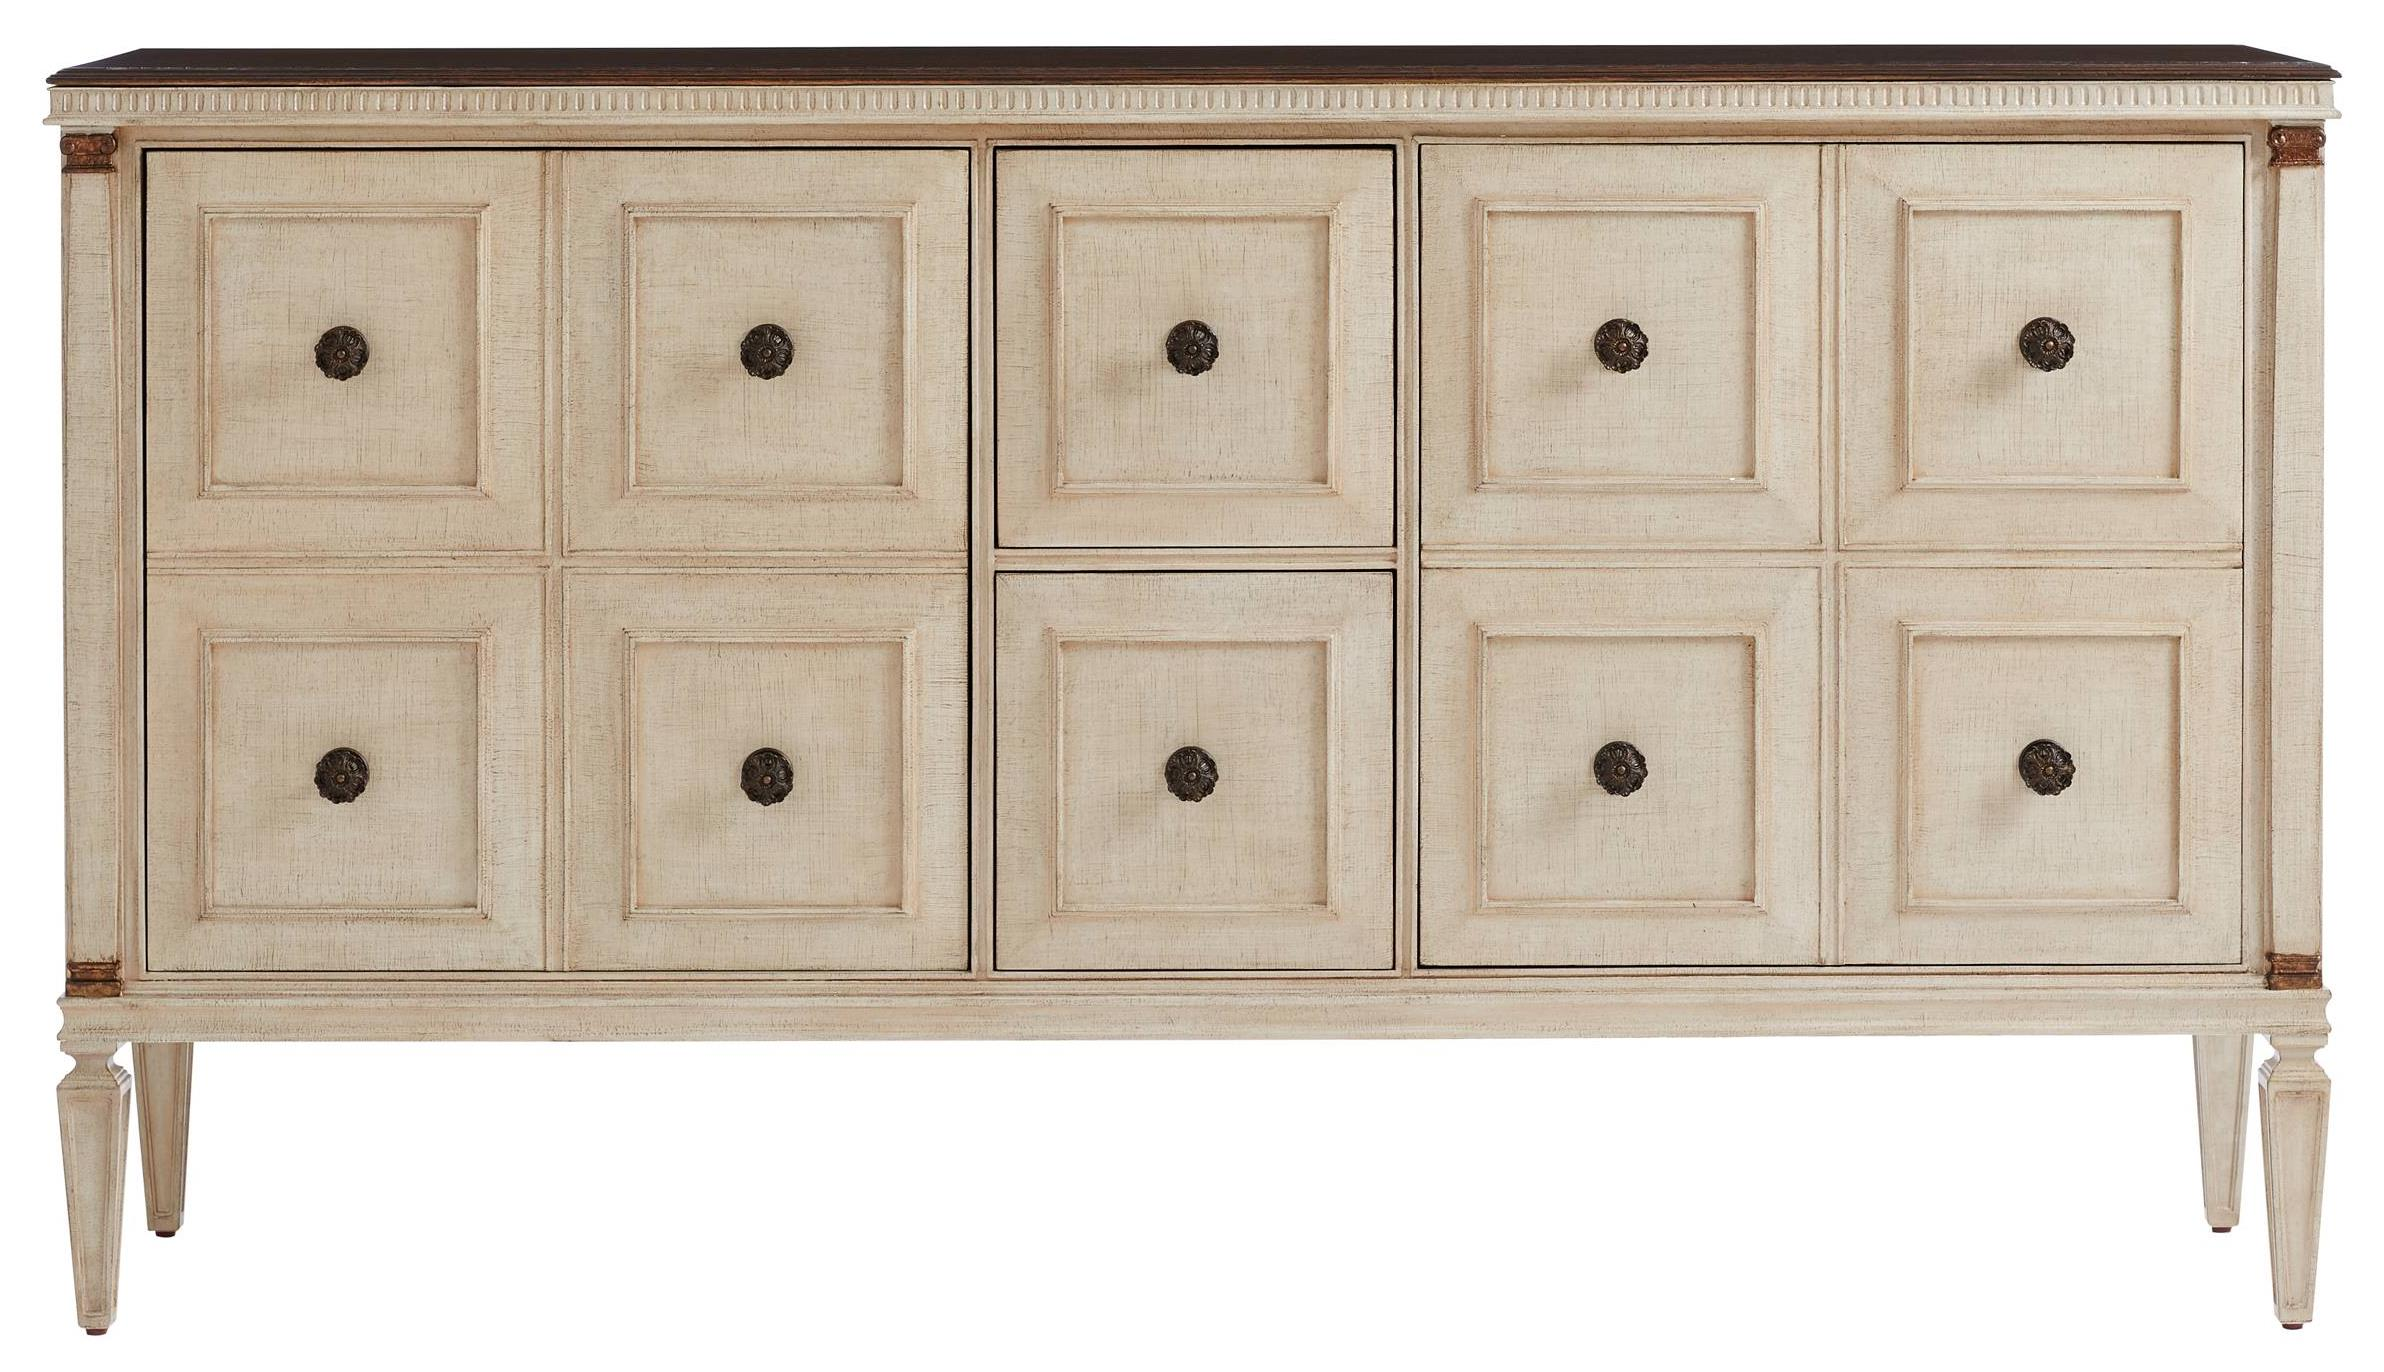 Stanley Furniture Villa Couture Marco Buffet - Item Number: 510-21-05